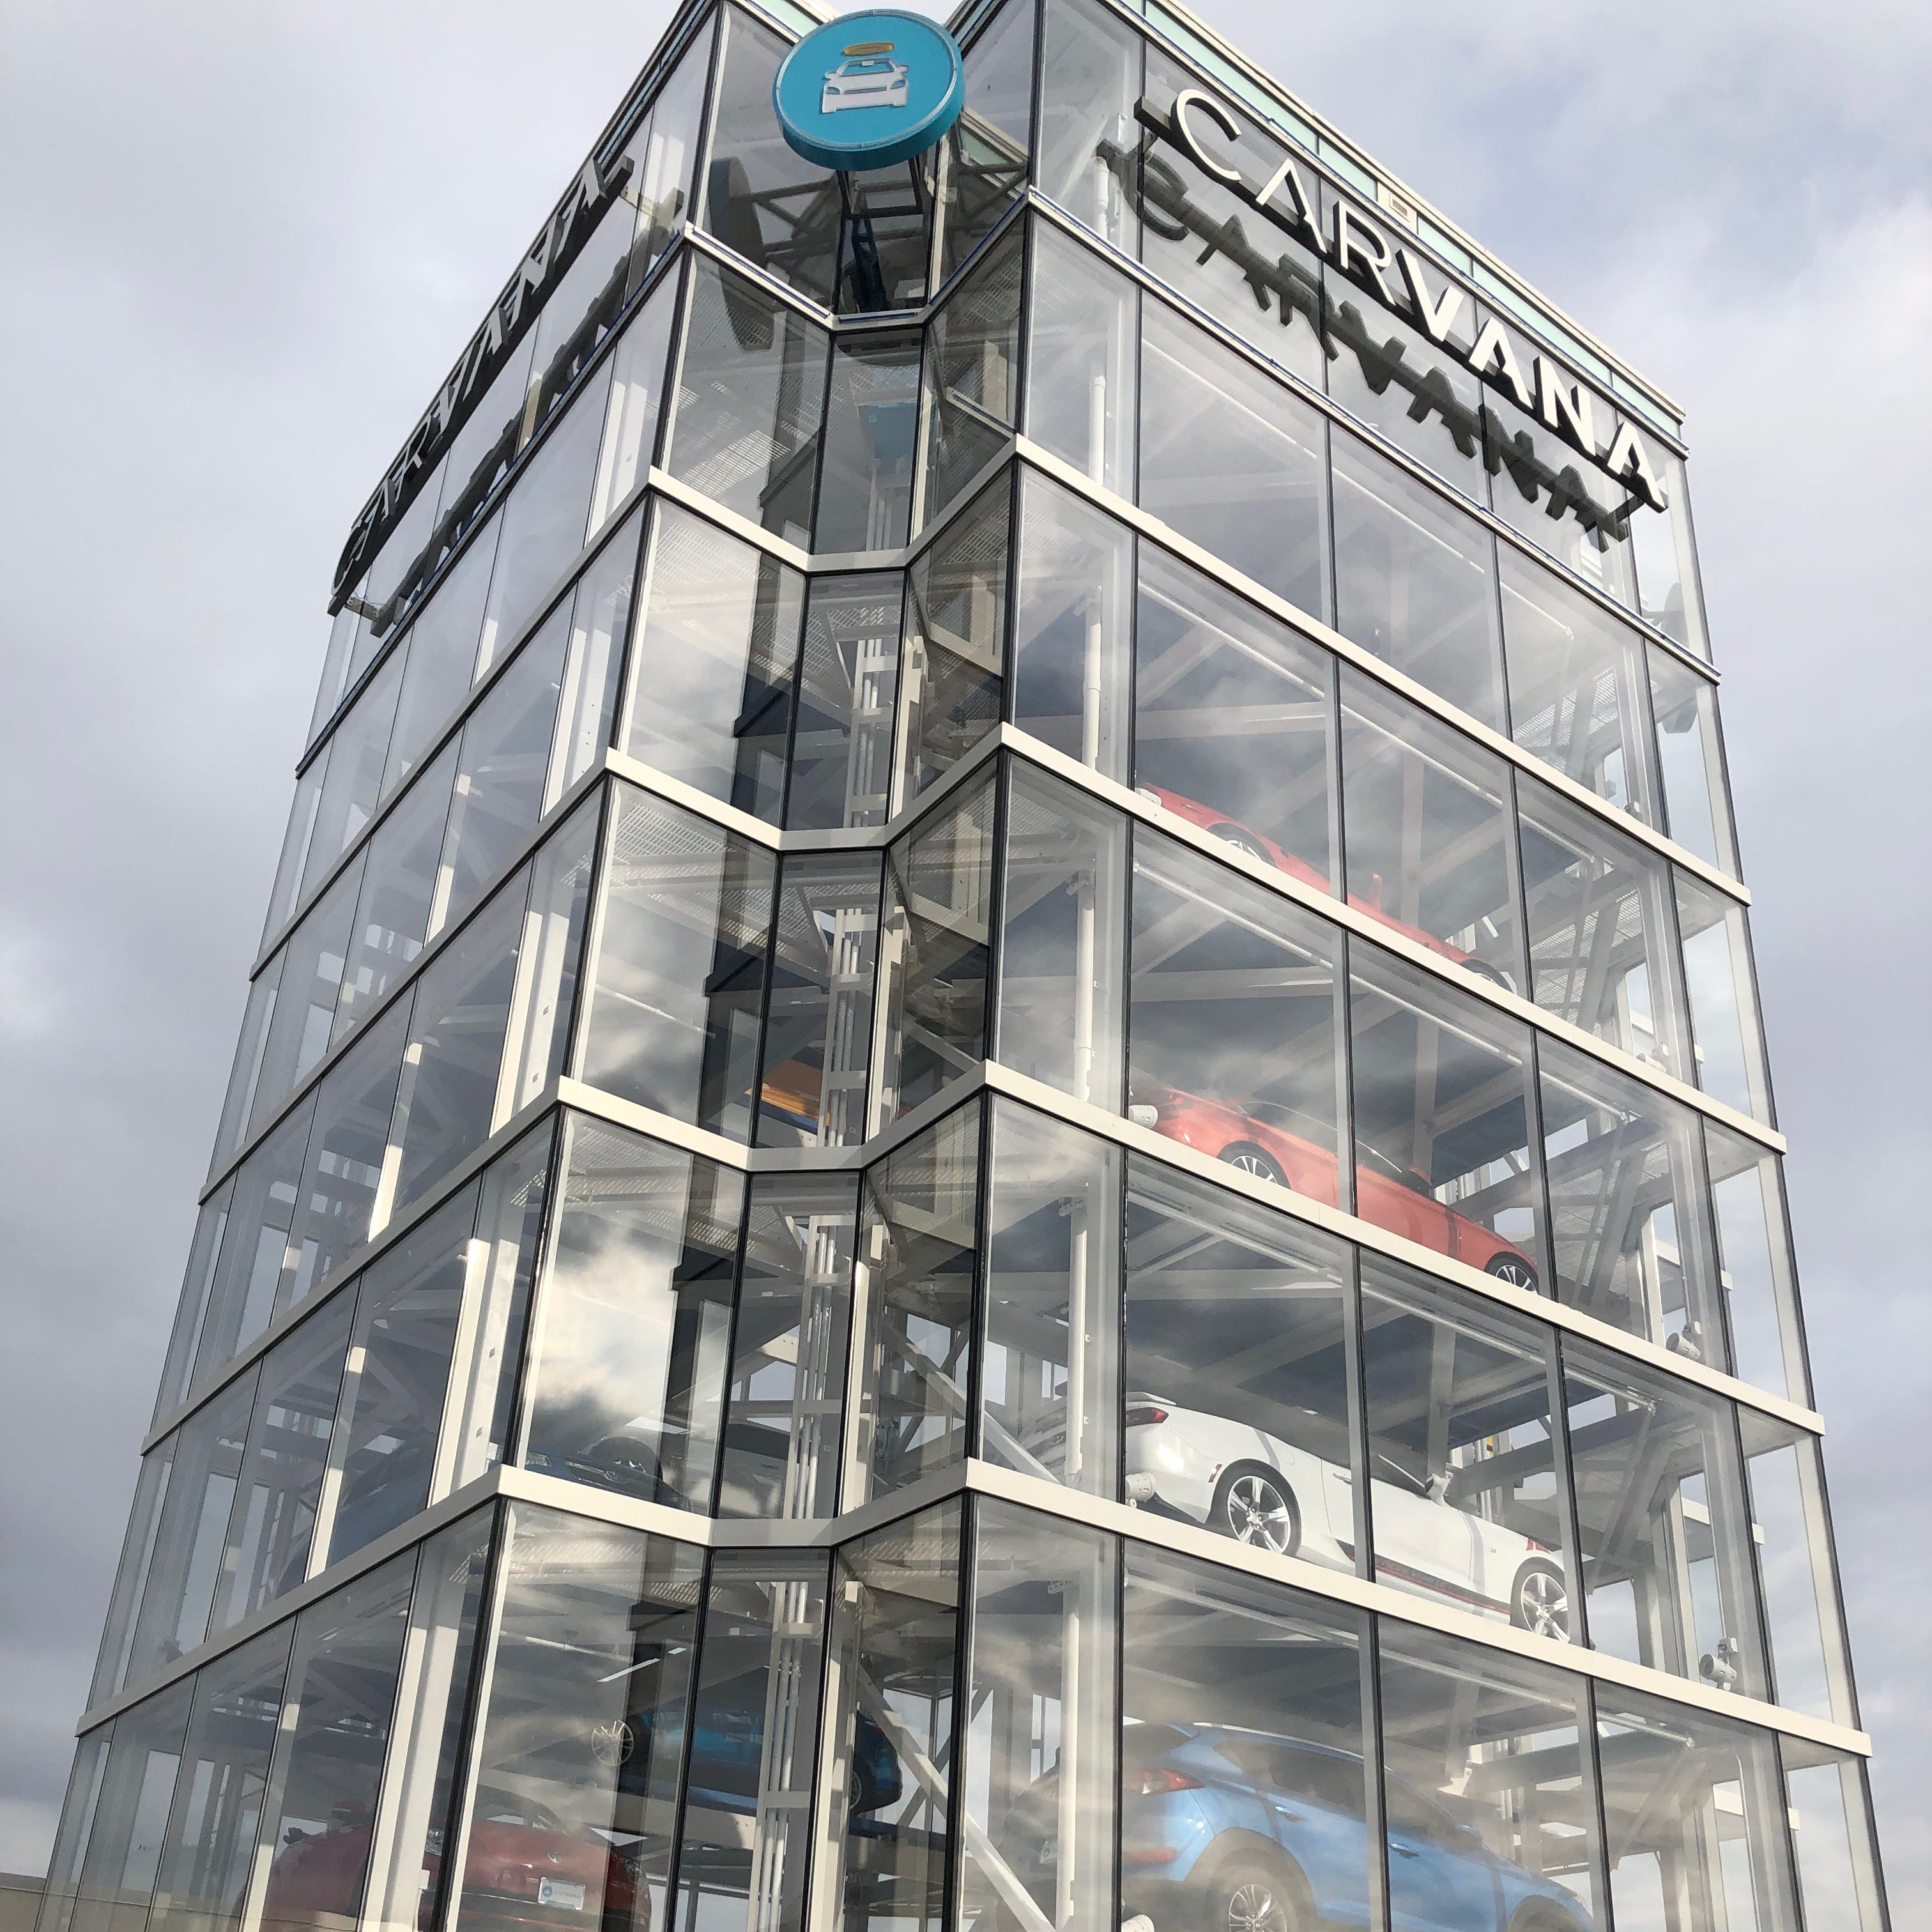 A car vending machine opens today on Indianapolis' north side